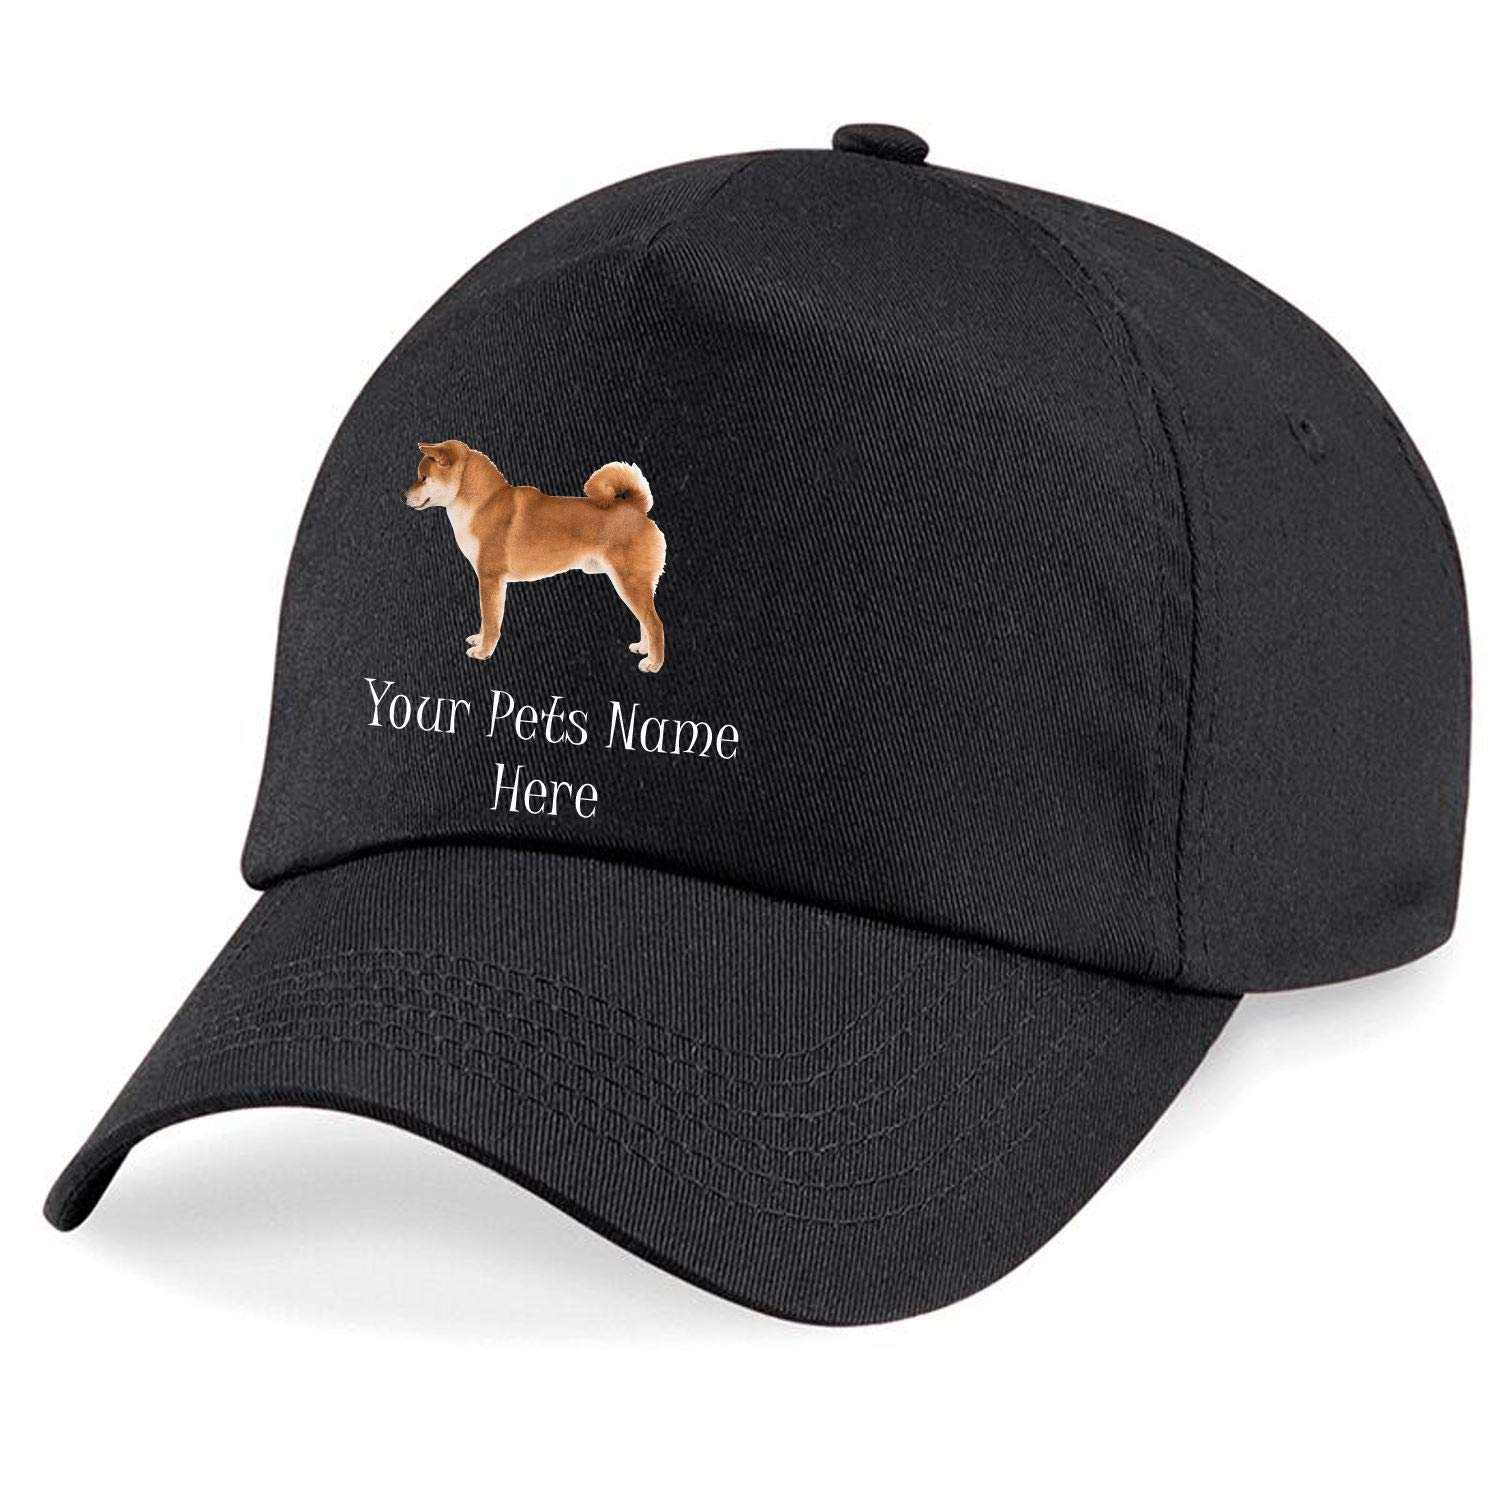 Taurus Clothing Shiba Inu Dog Personalised Embroidered Cap Black